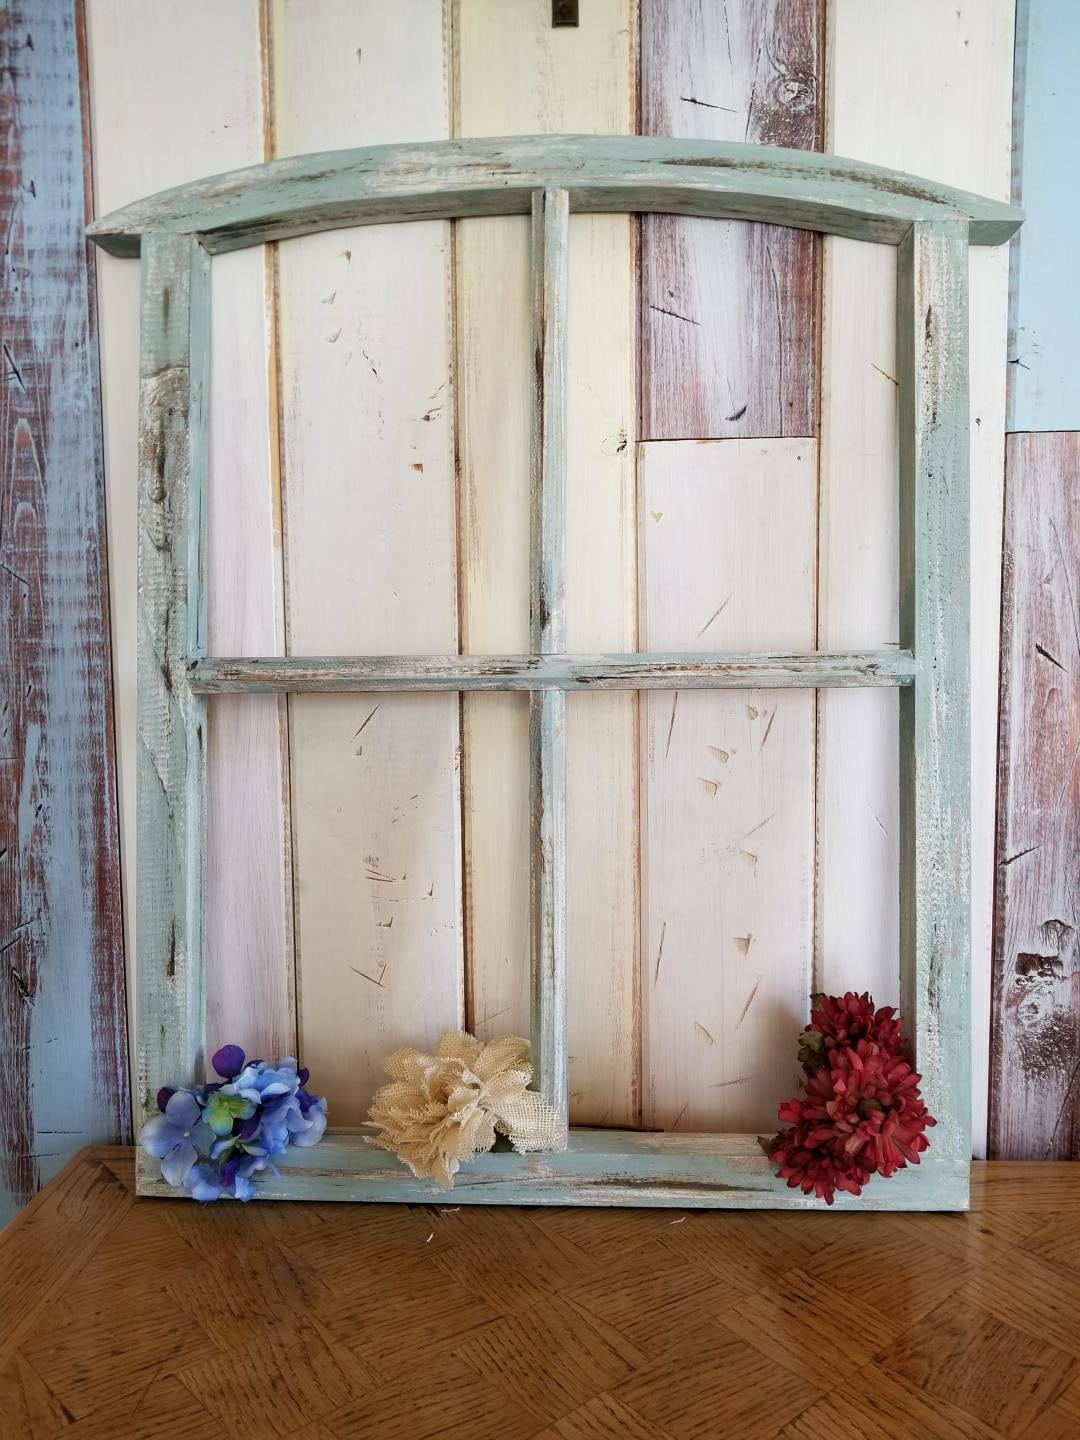 27 Rustic Old Window Frame Farmhouse Arched Window Etsy